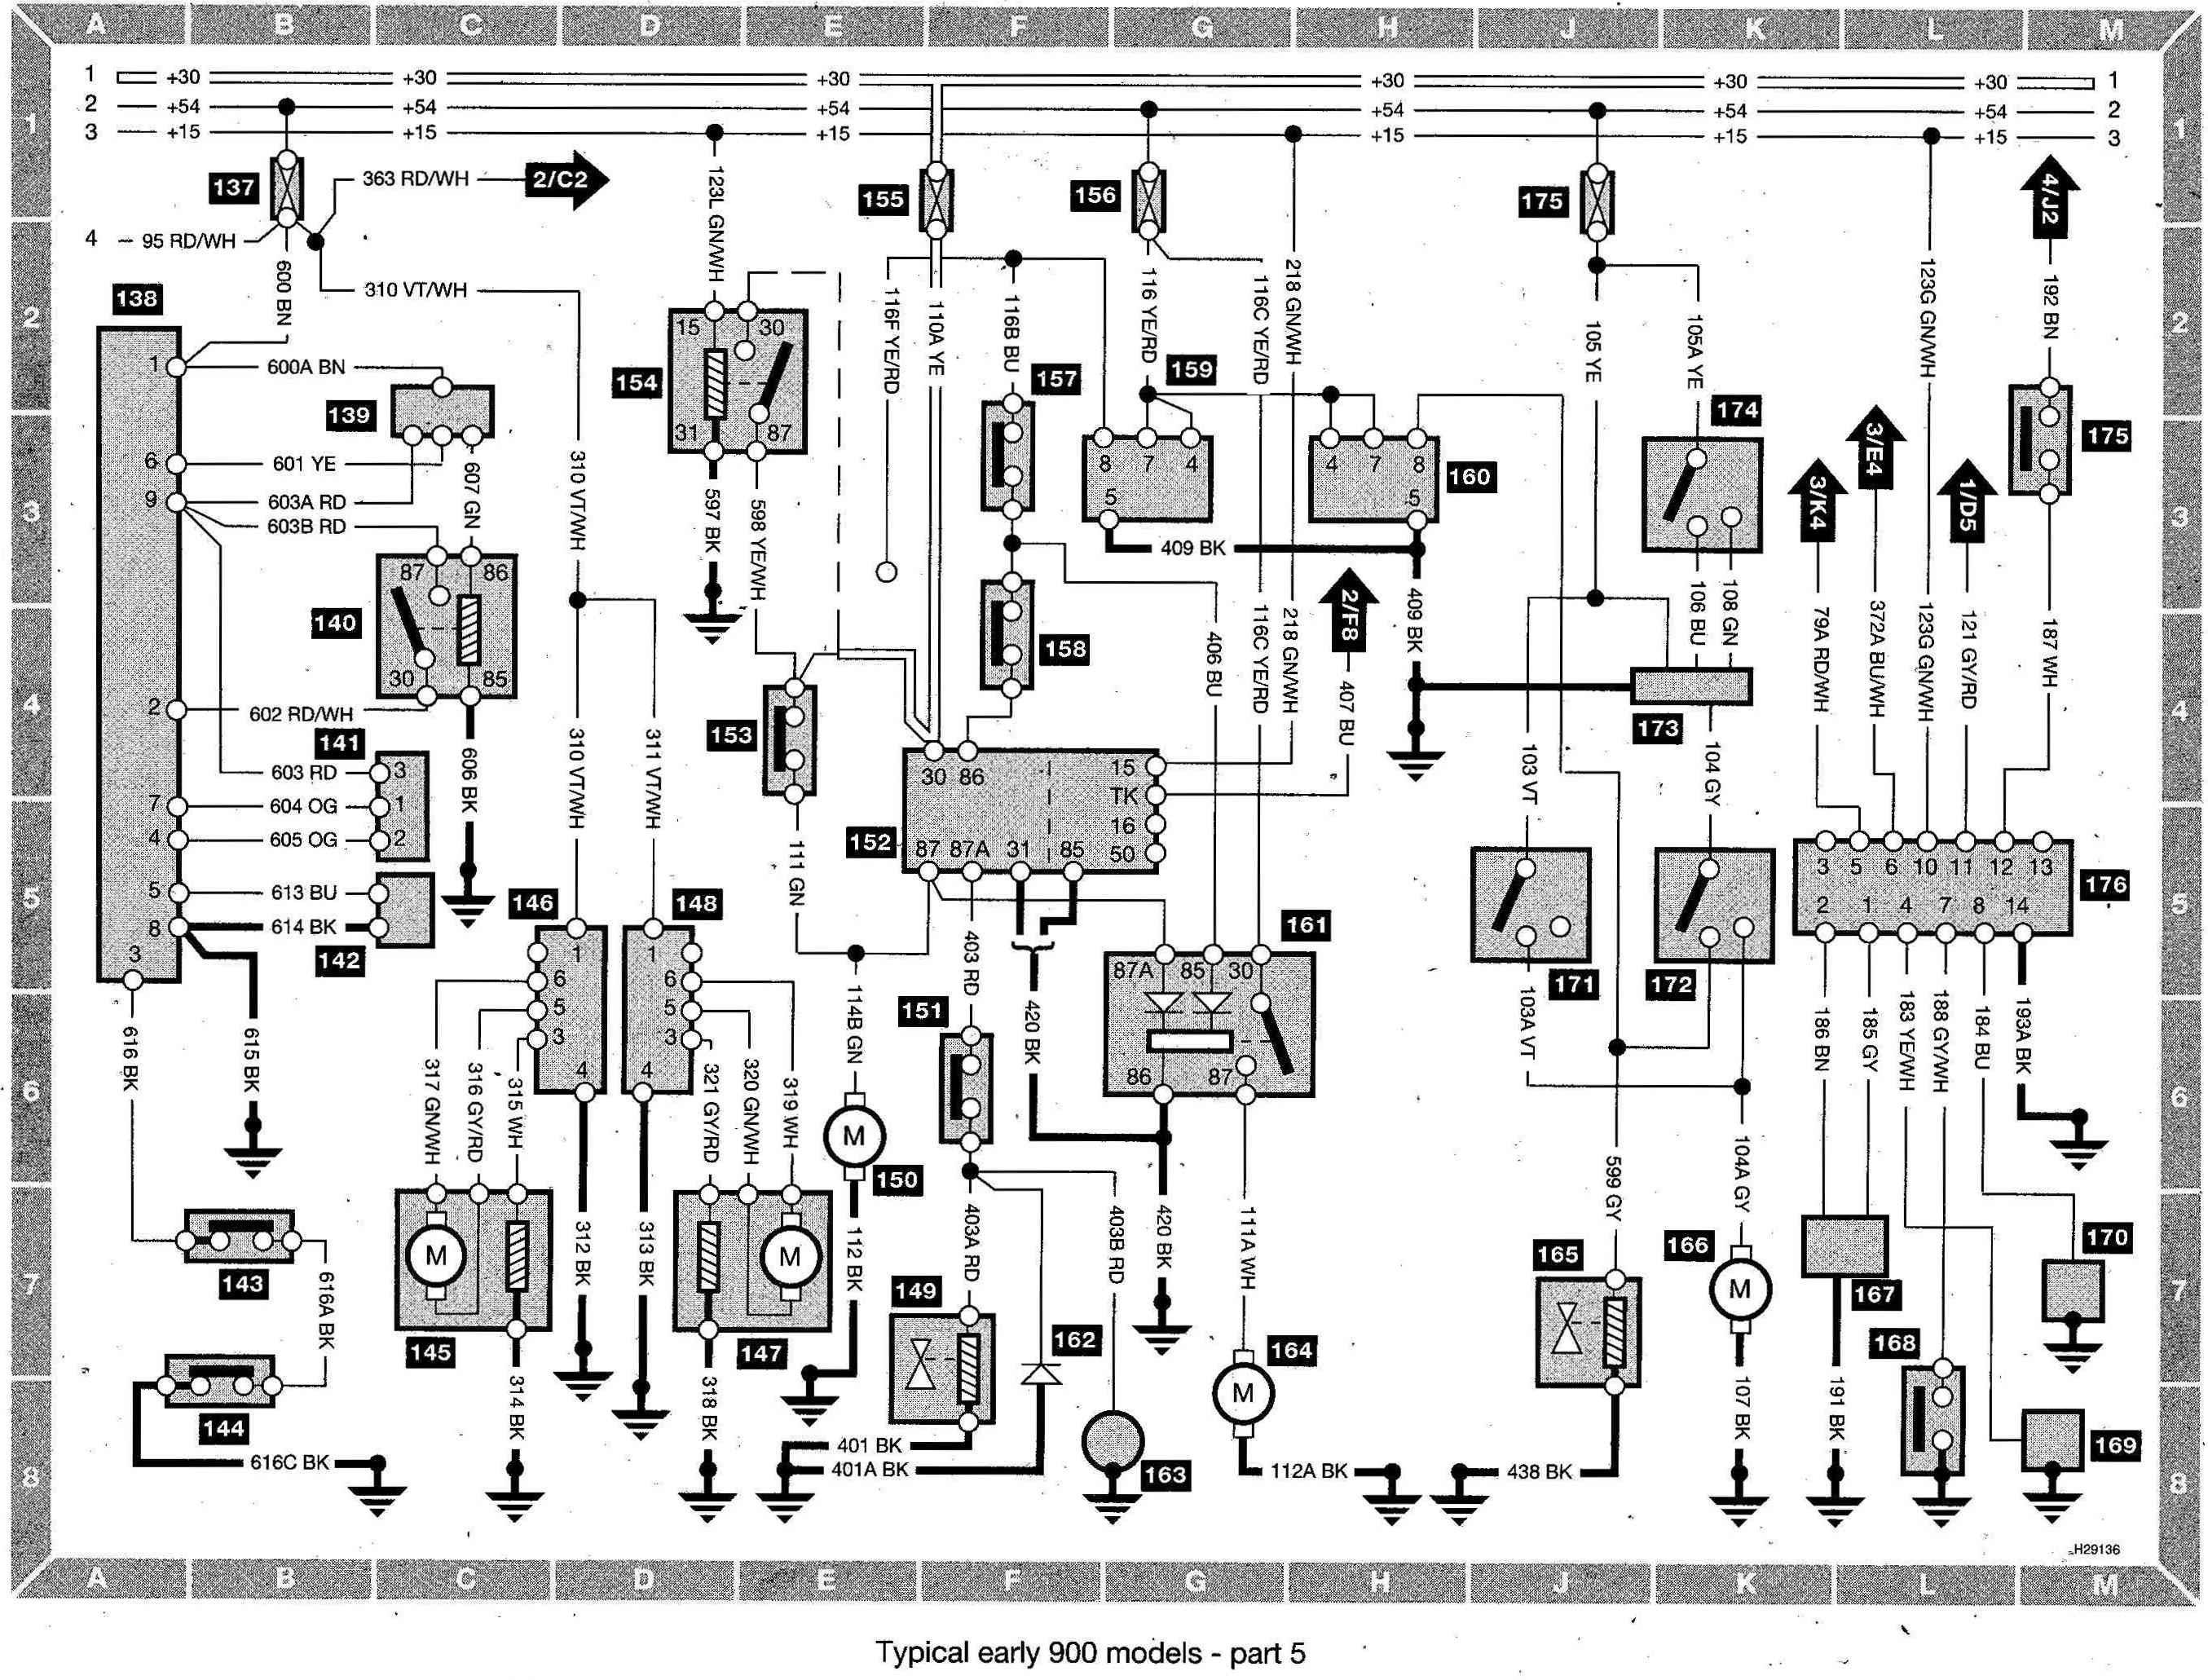 Jacuzzi Aero Spa Electrical Schematic